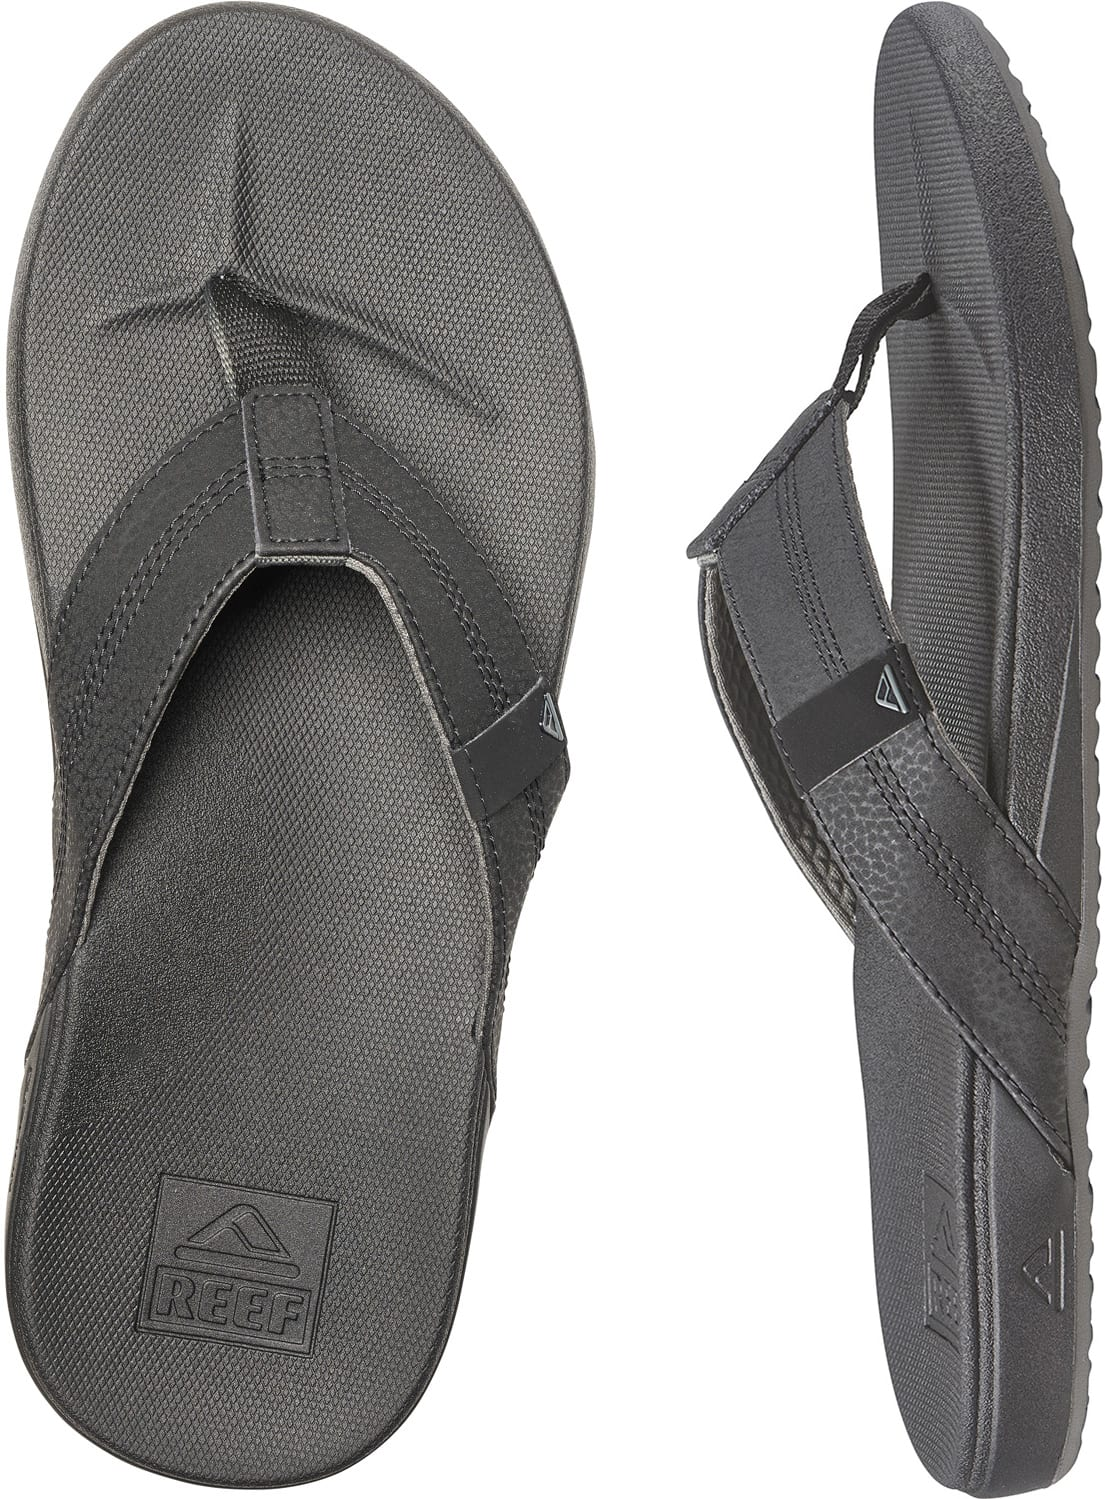 Reef Cushion Bounce Sandals 2019